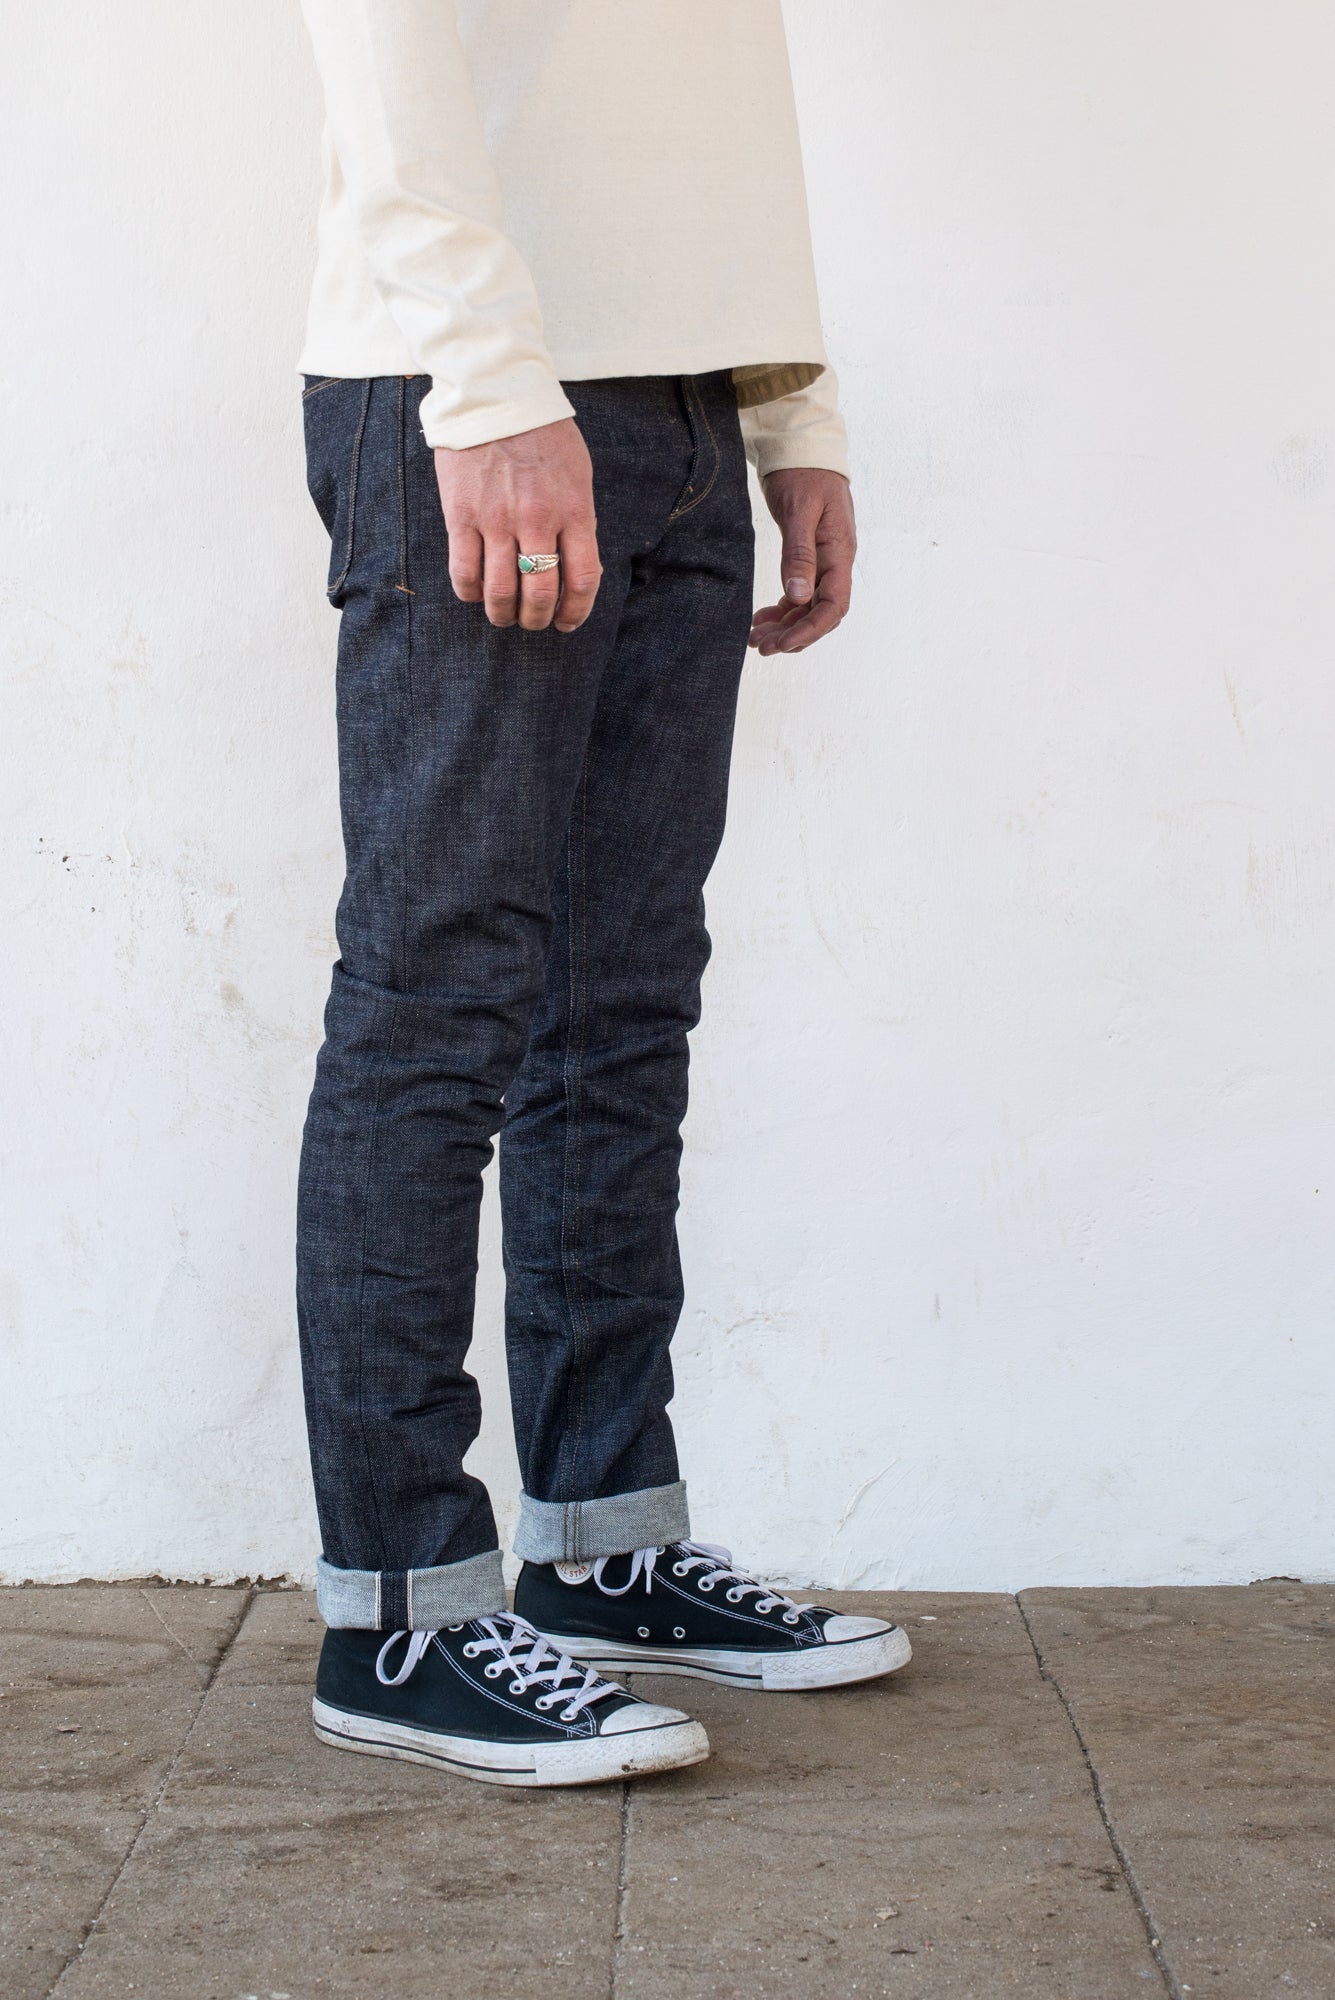 Freenote Cloth | Avila 13 oz Natural Indigo On Body Profile| $250